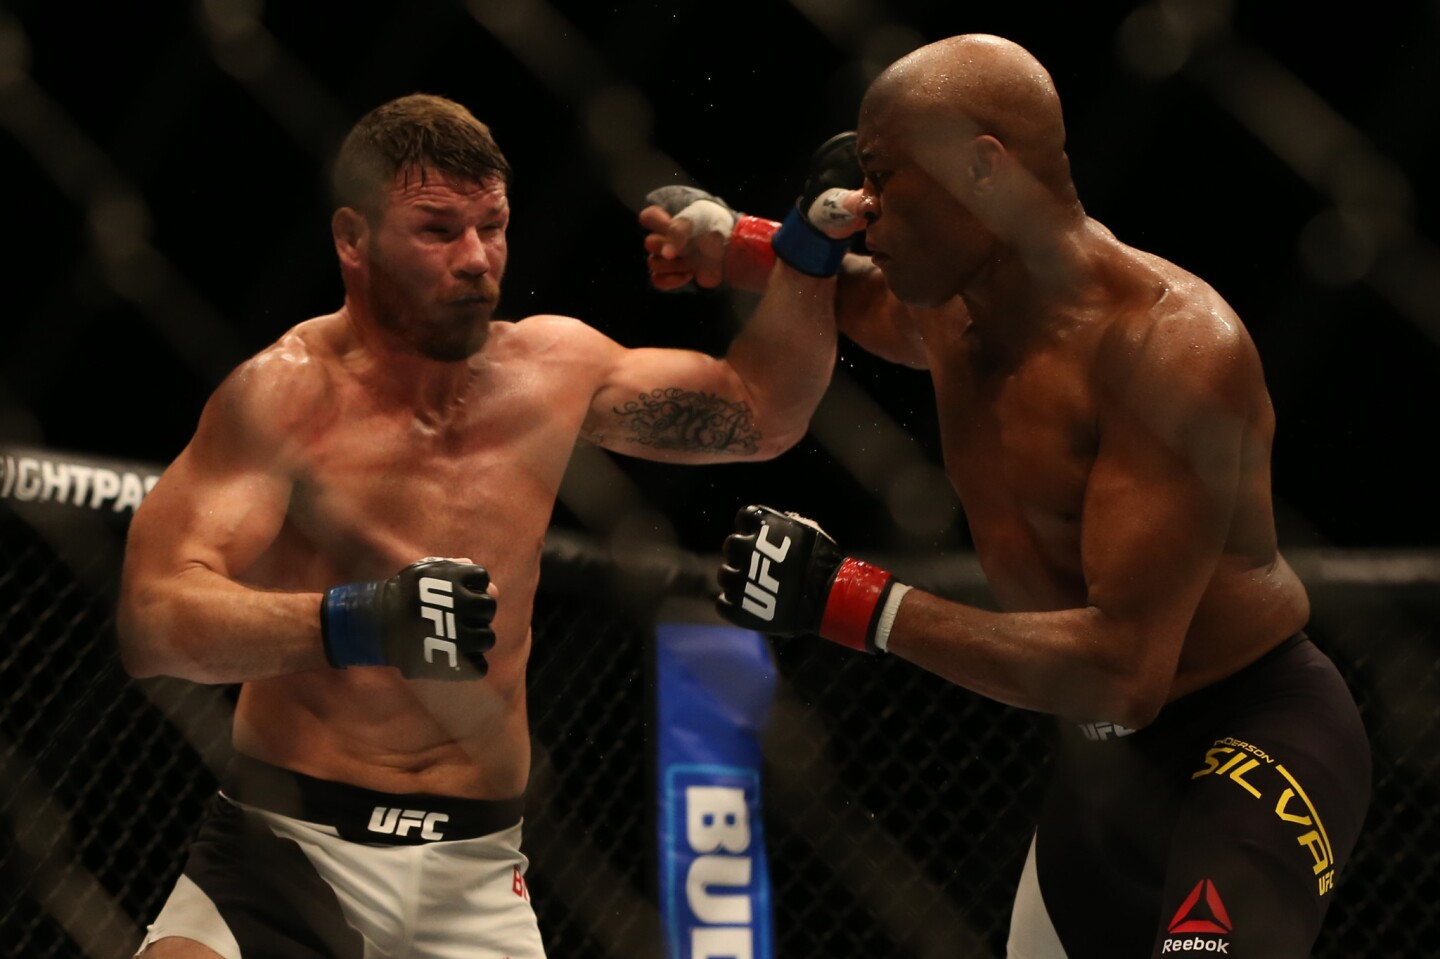 Brazil's Anderson Silva (R) and Great Britain's Michael Bisping (L) in action.